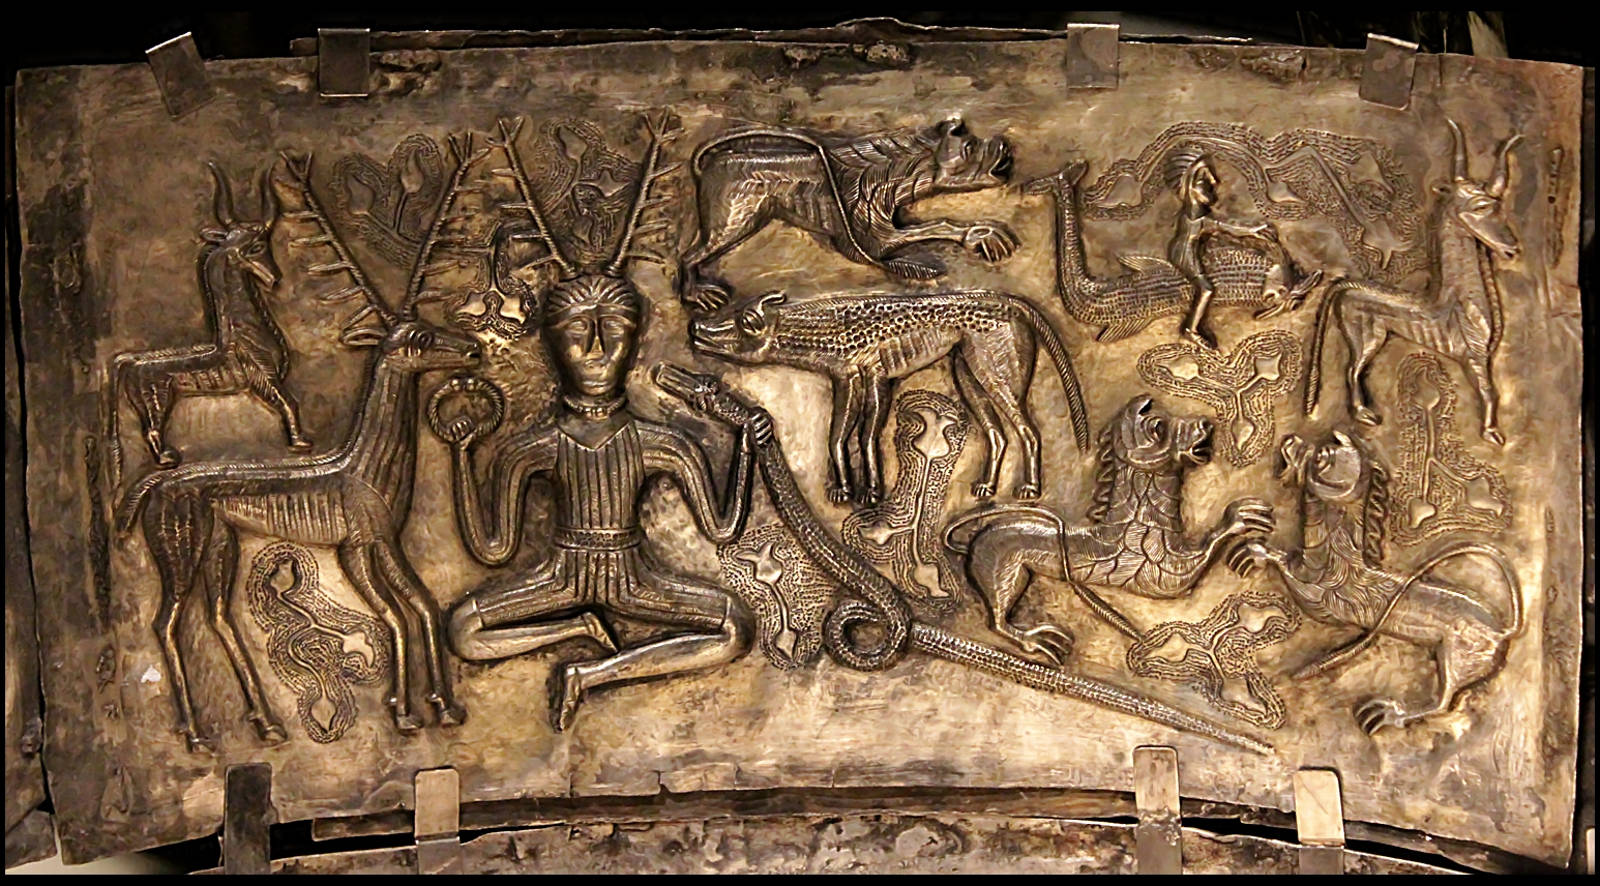 Horned god depicted on Gundestrup Cauldron